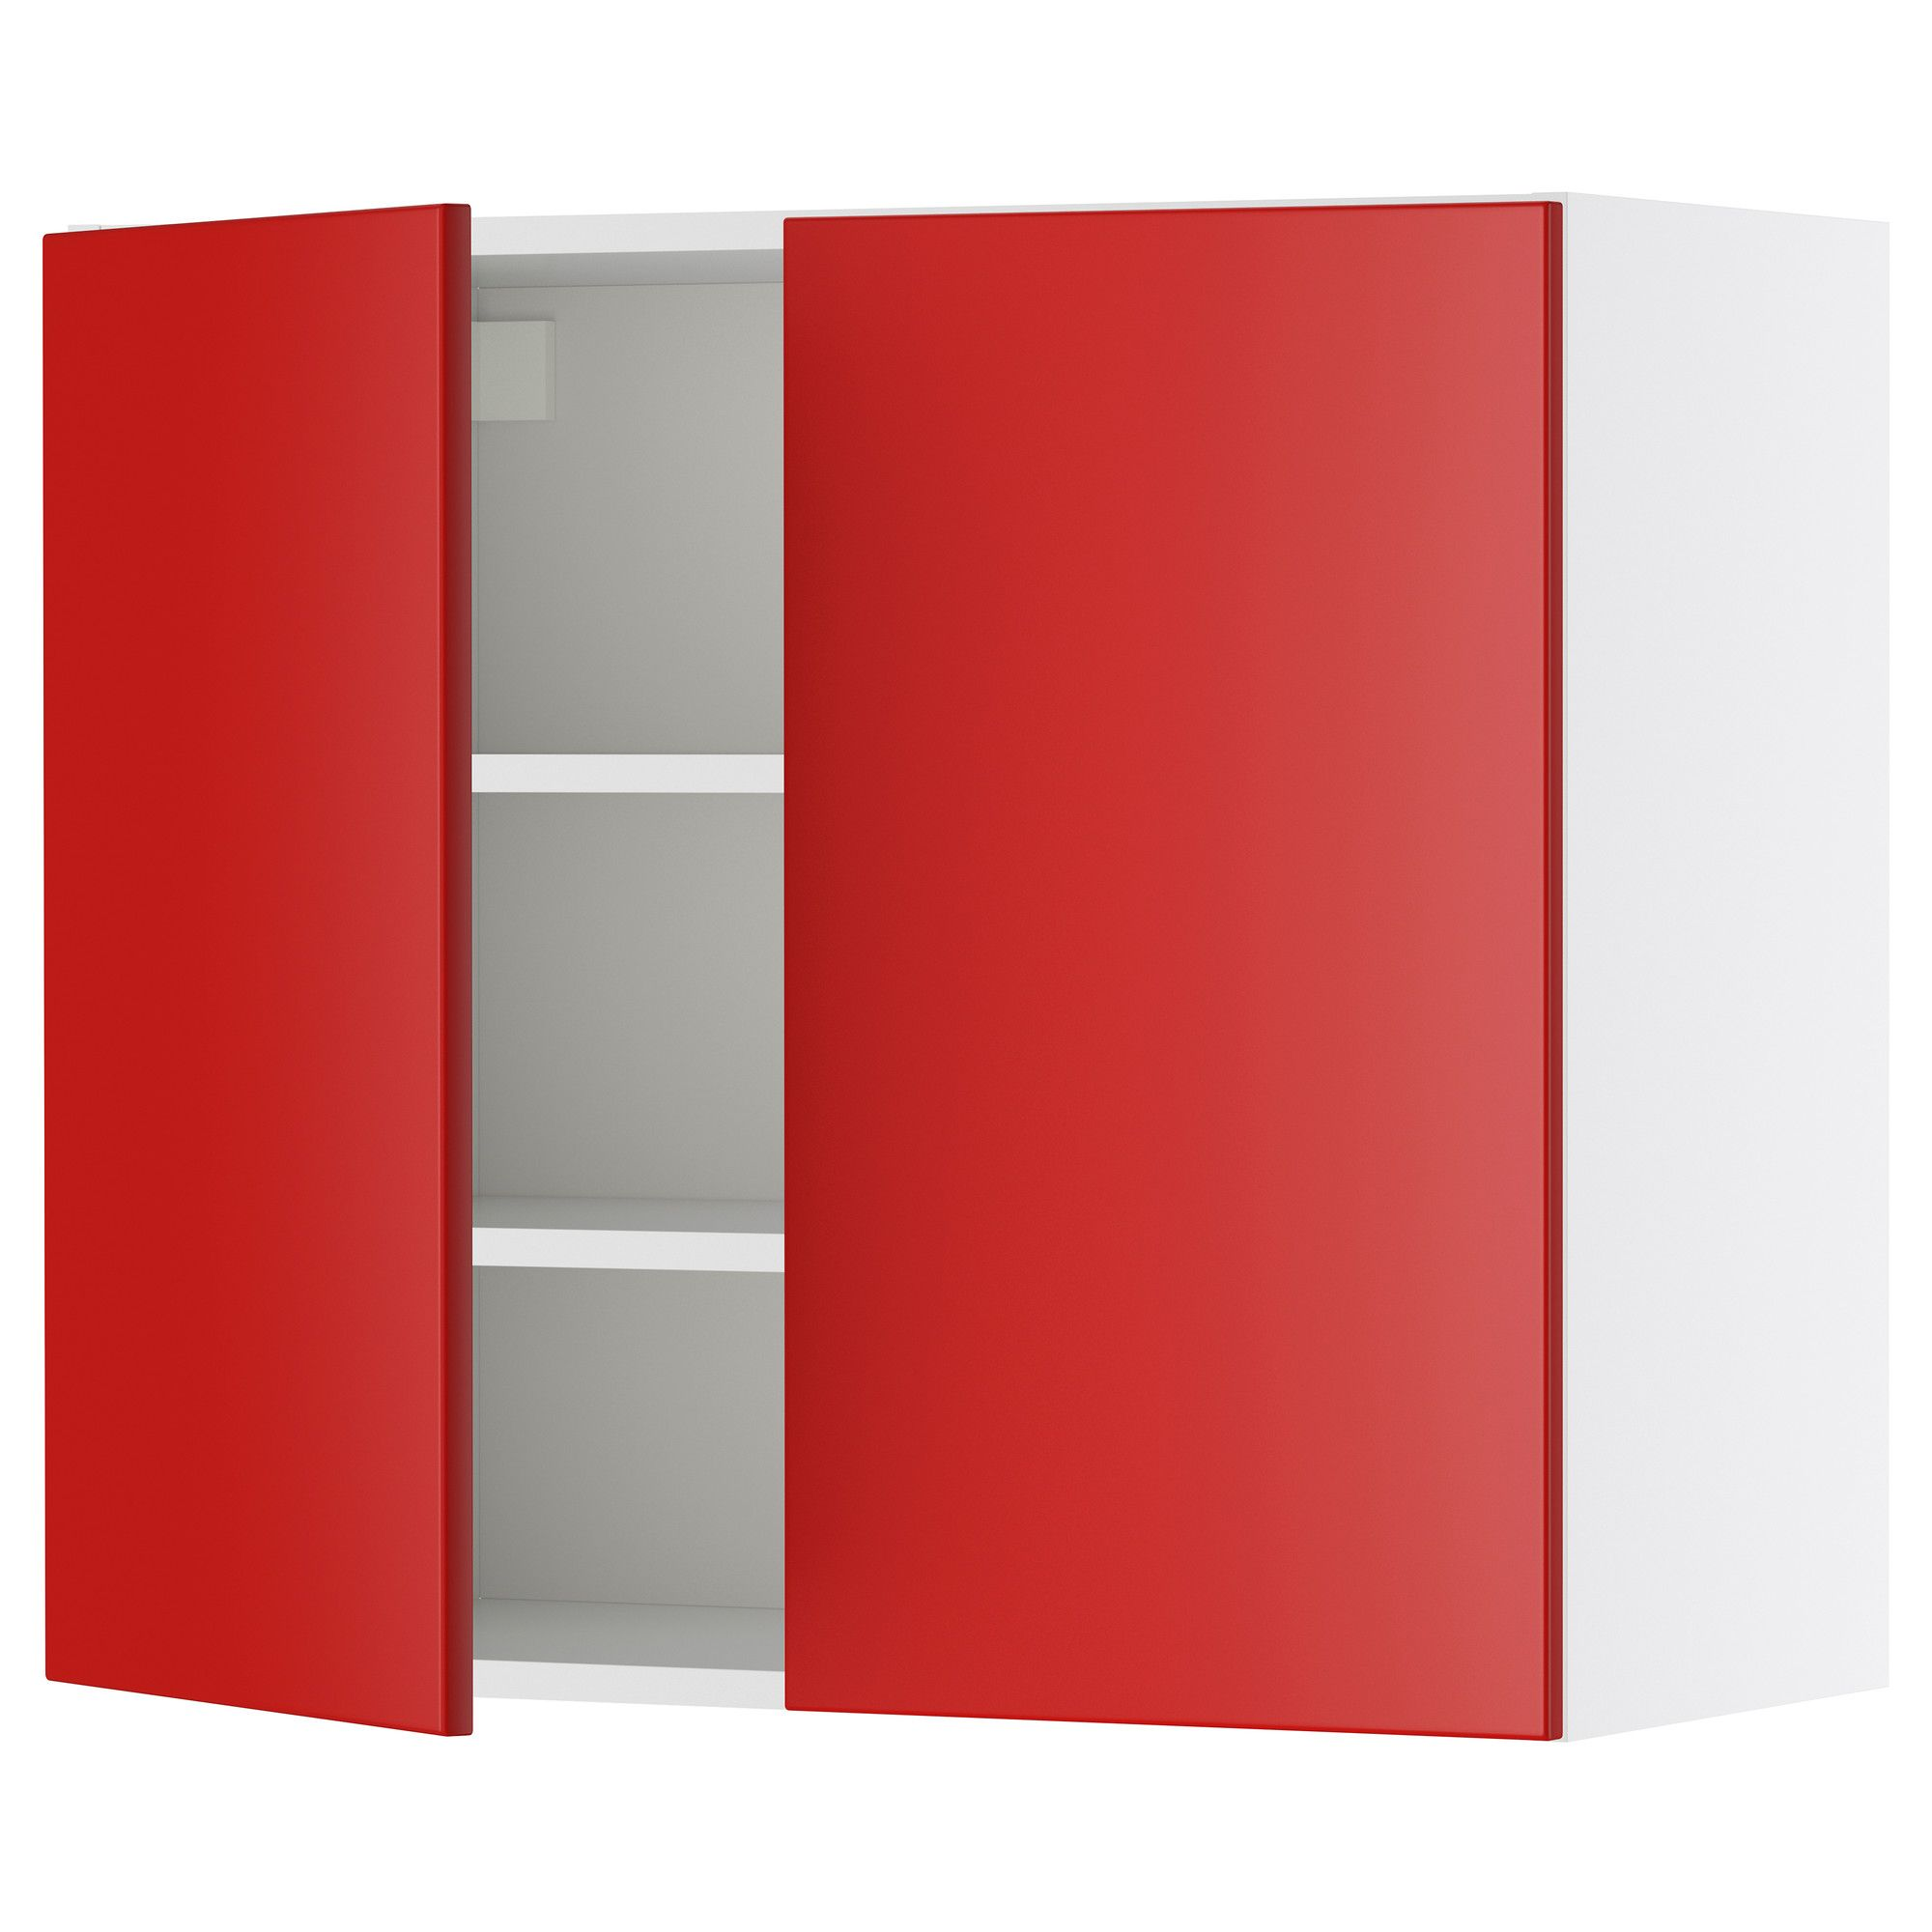 Applad Doors Ikea Kitchen: AKURUM Wall Cabinet With 2 Doors